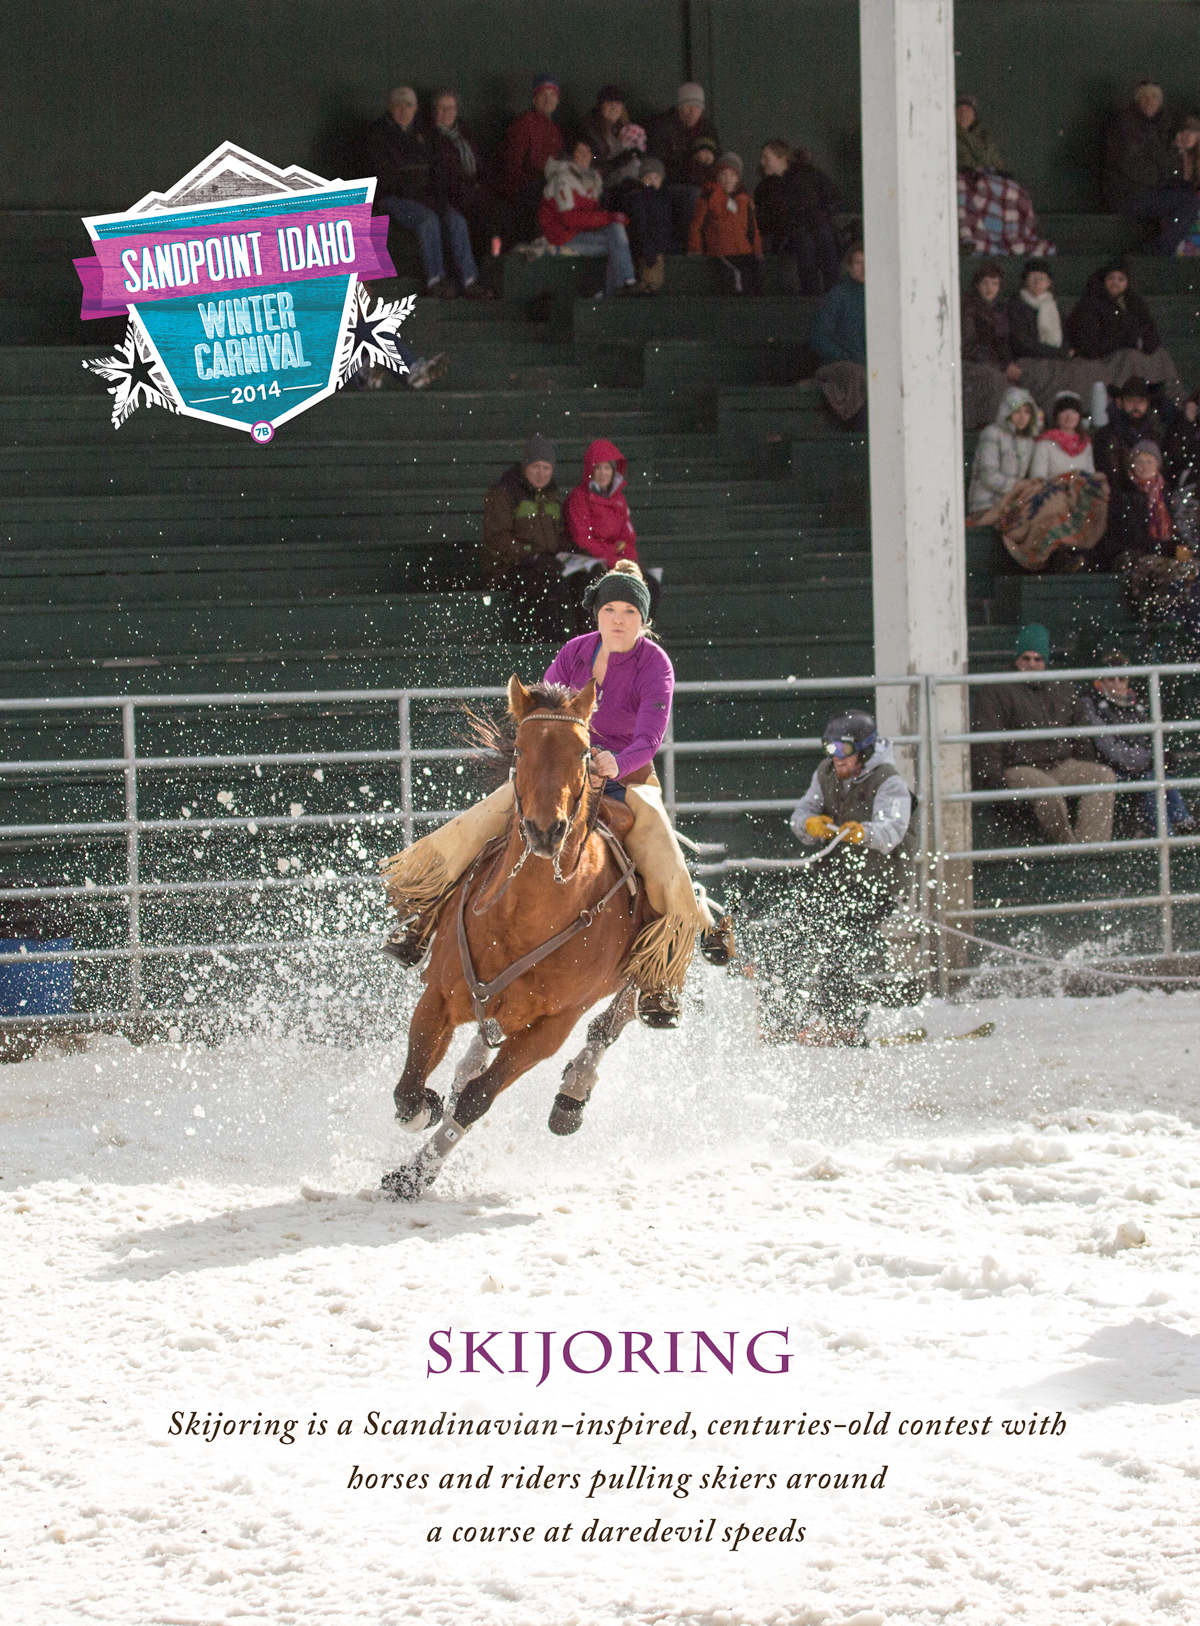 skijoring at Sandpoint Winter Carnival 2014 at the Bonner County Fairgrounds